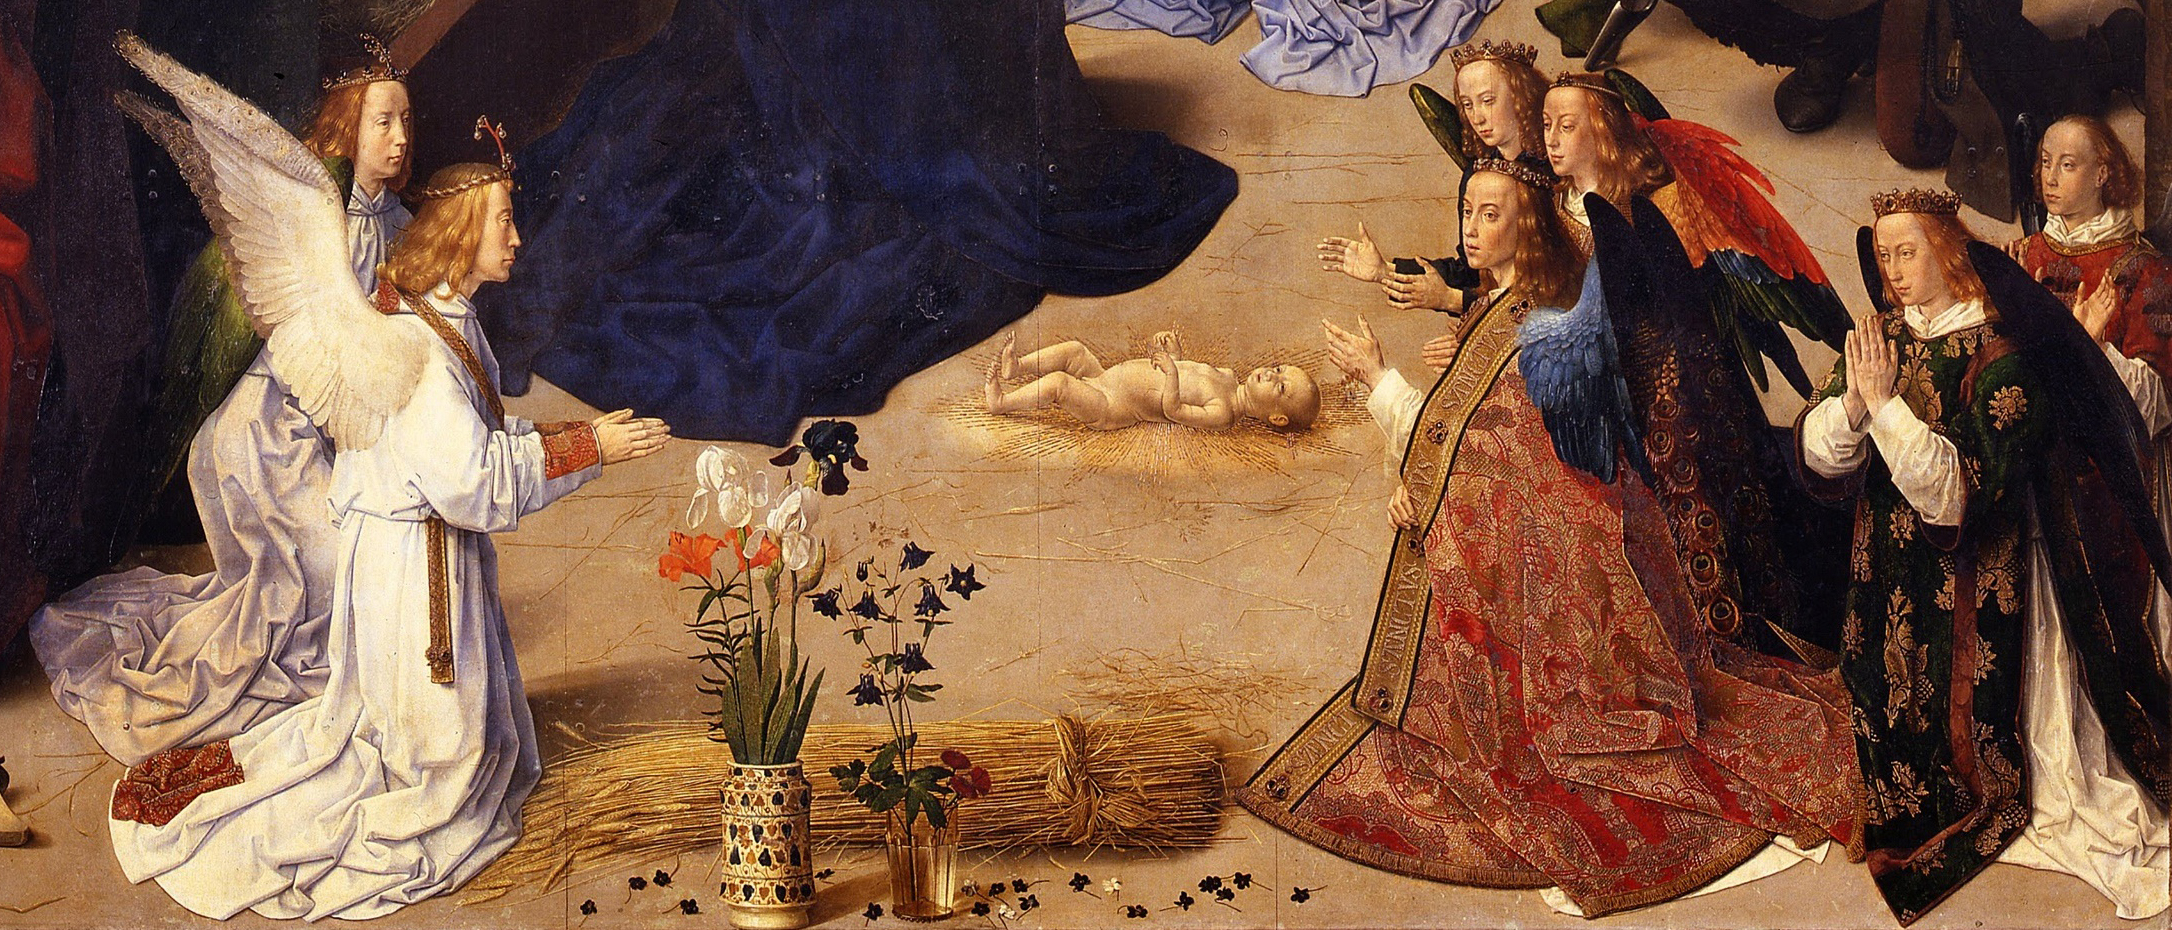 Hugo van der Goes, Portinari Altarpiece, detail of the center panel foreground, c. 1476, oil on wood, 274 x 652 cm when open (Uffizi)